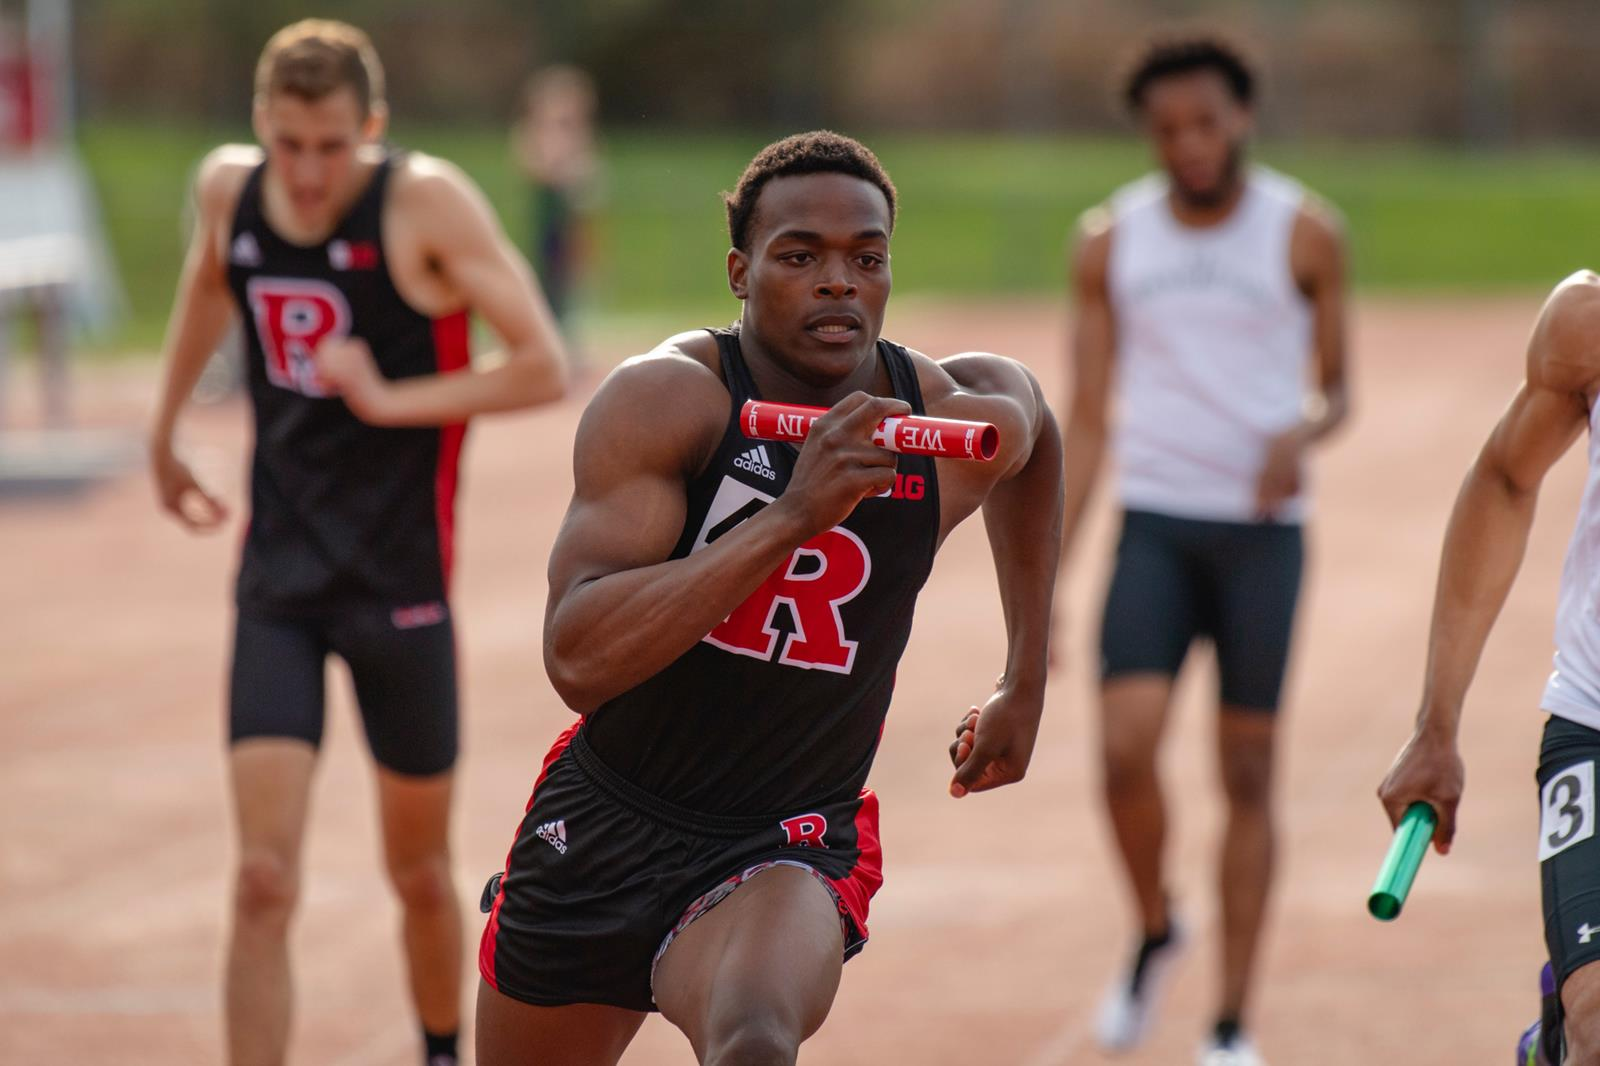 The Rutgers track and field team members running